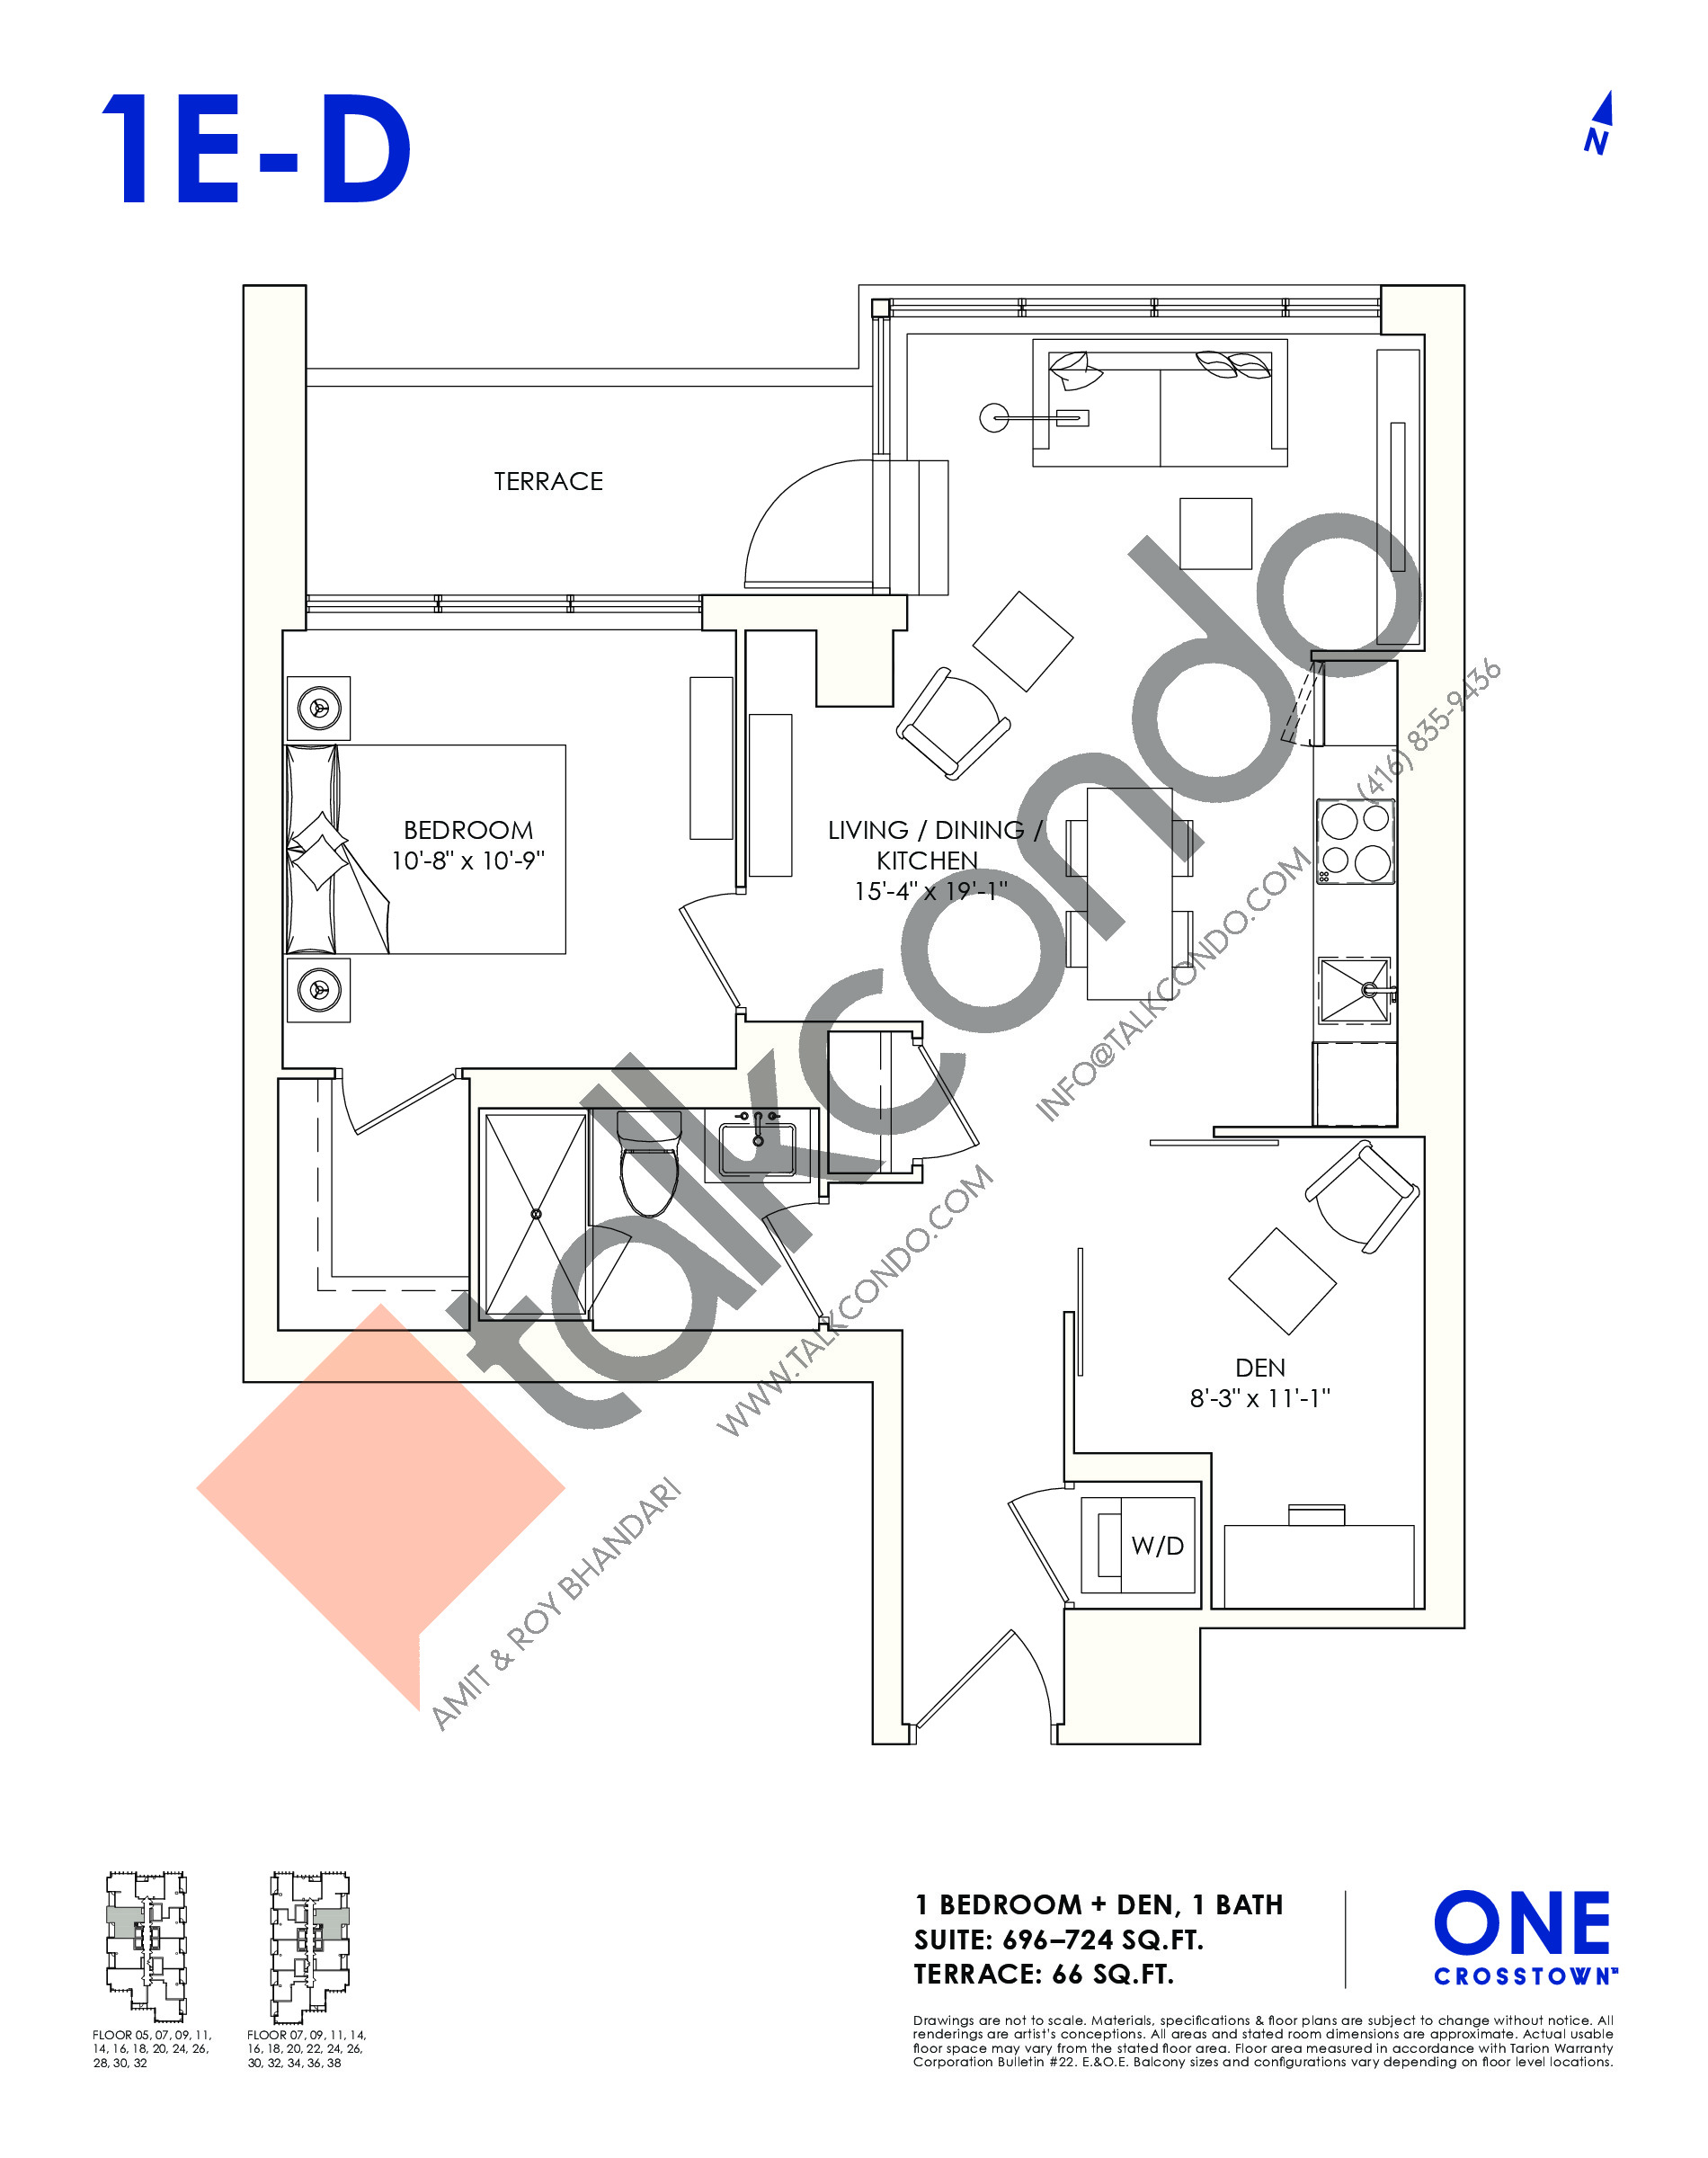 1E-D Floor Plan at One Crosstown Condos - 724 sq.ft